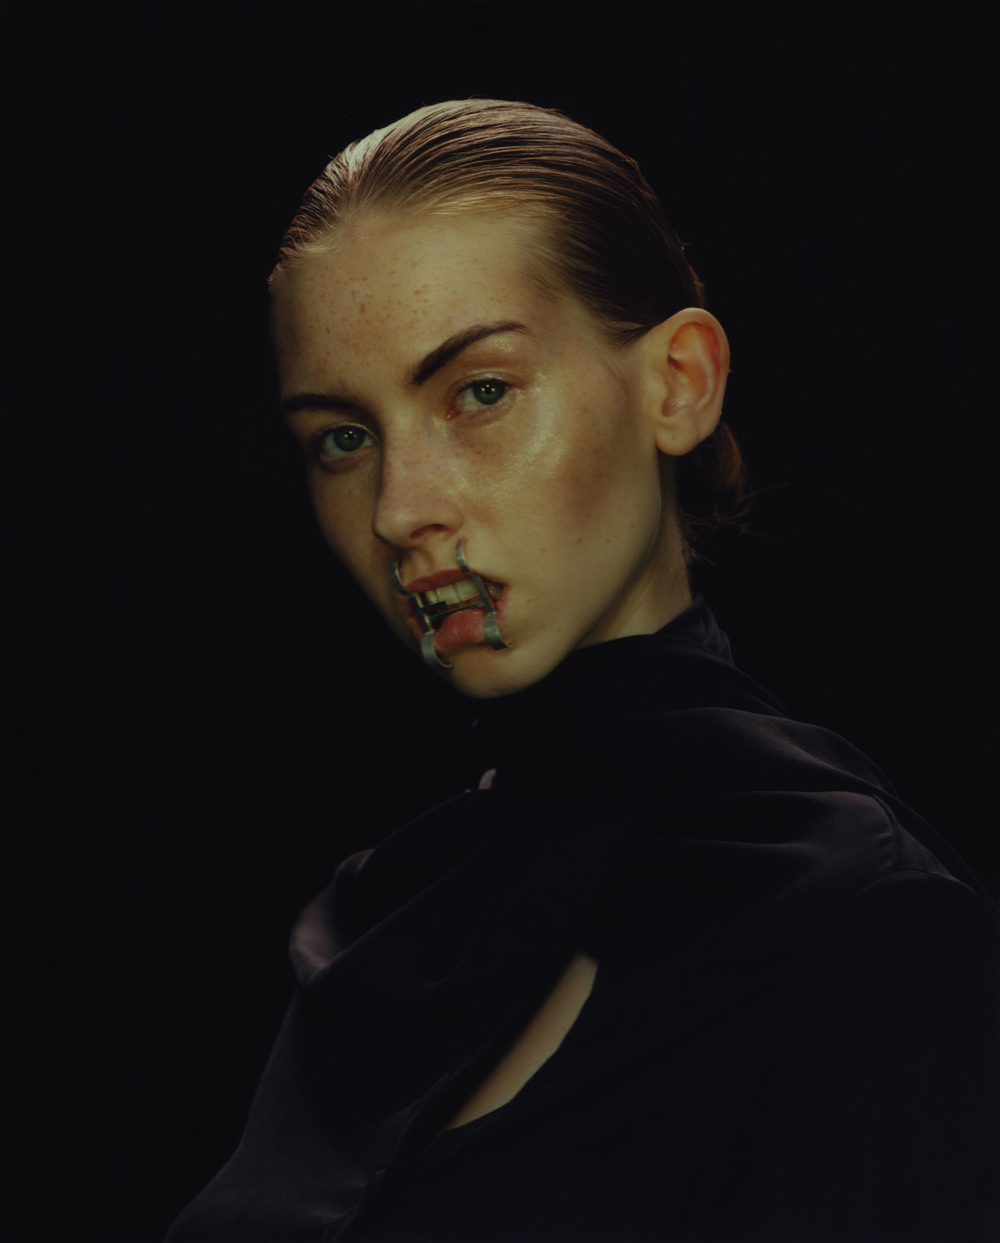 Mouth Piece by Sofia Winberg, Silk Shirt by Palmer//Harding